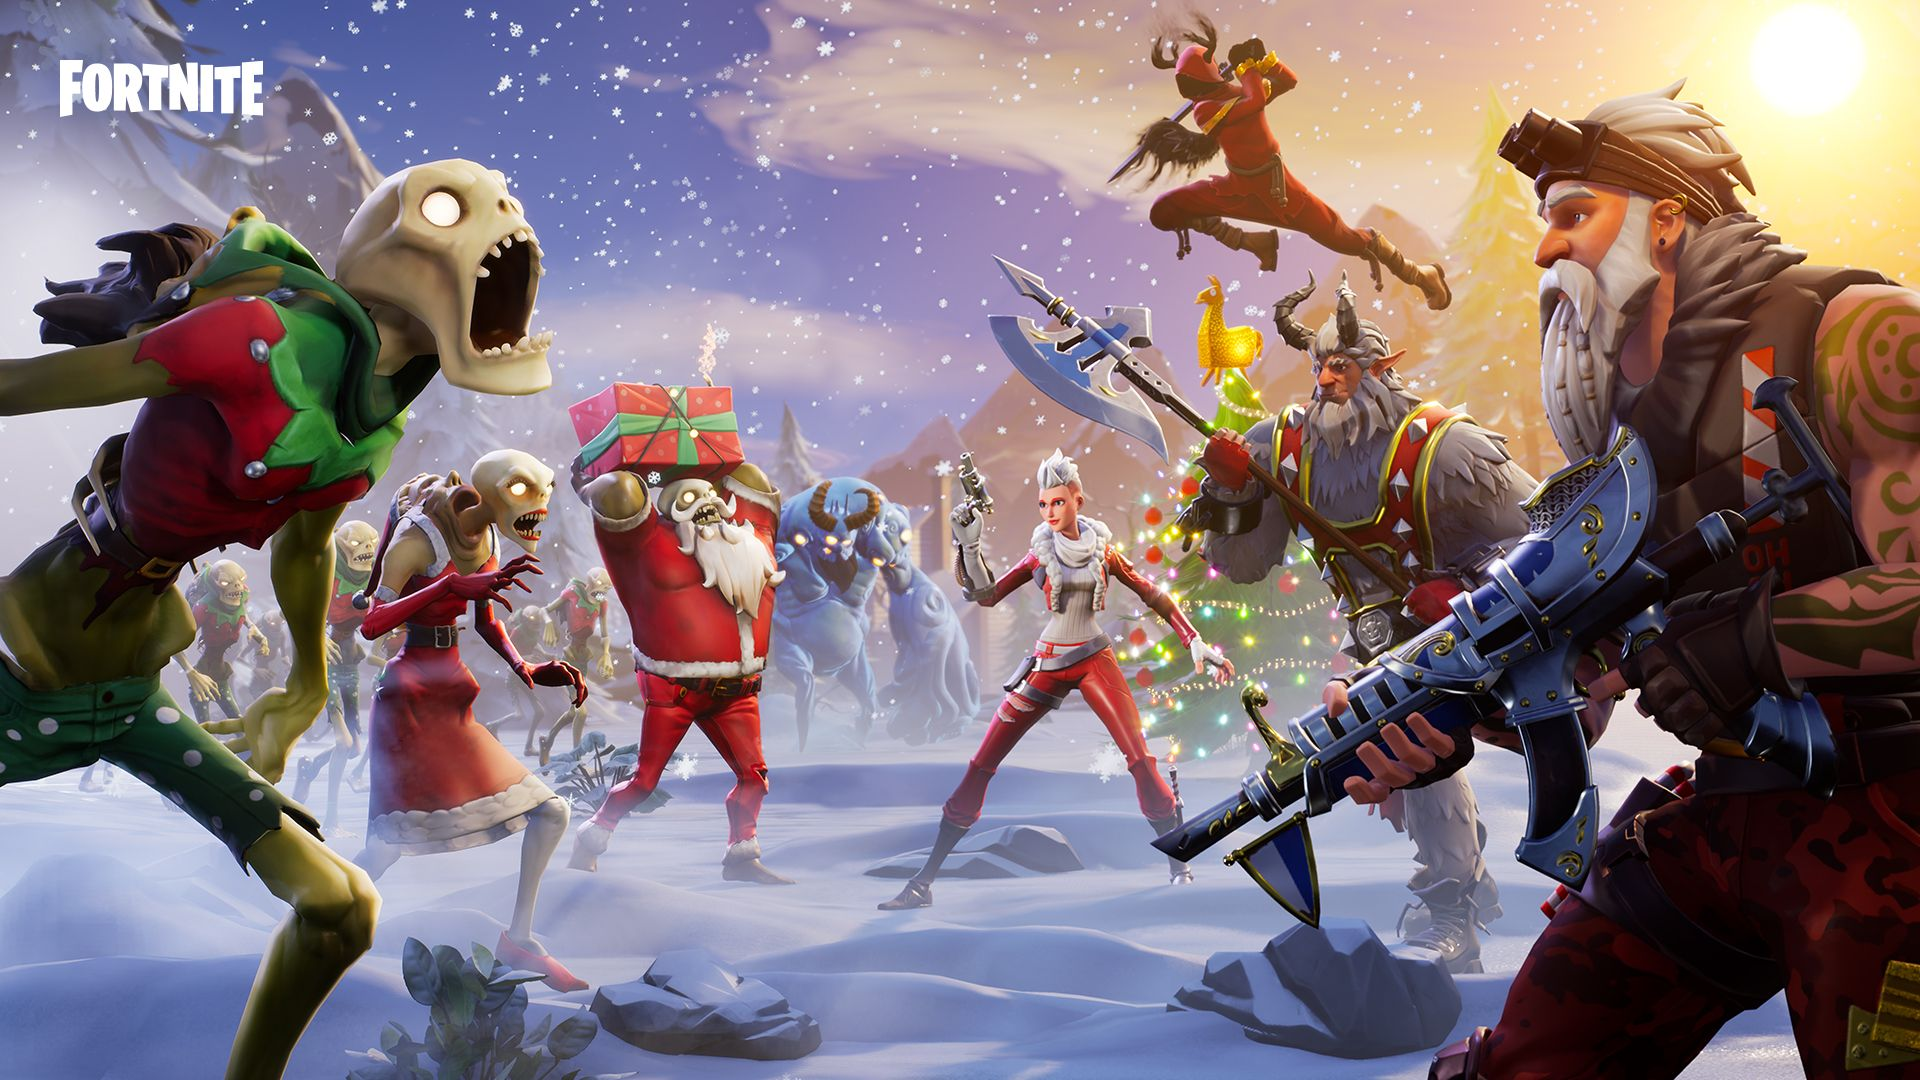 fortnite update 7 10 adds 14 days of challenges bug fixes patch notes - fortnite crouch spam